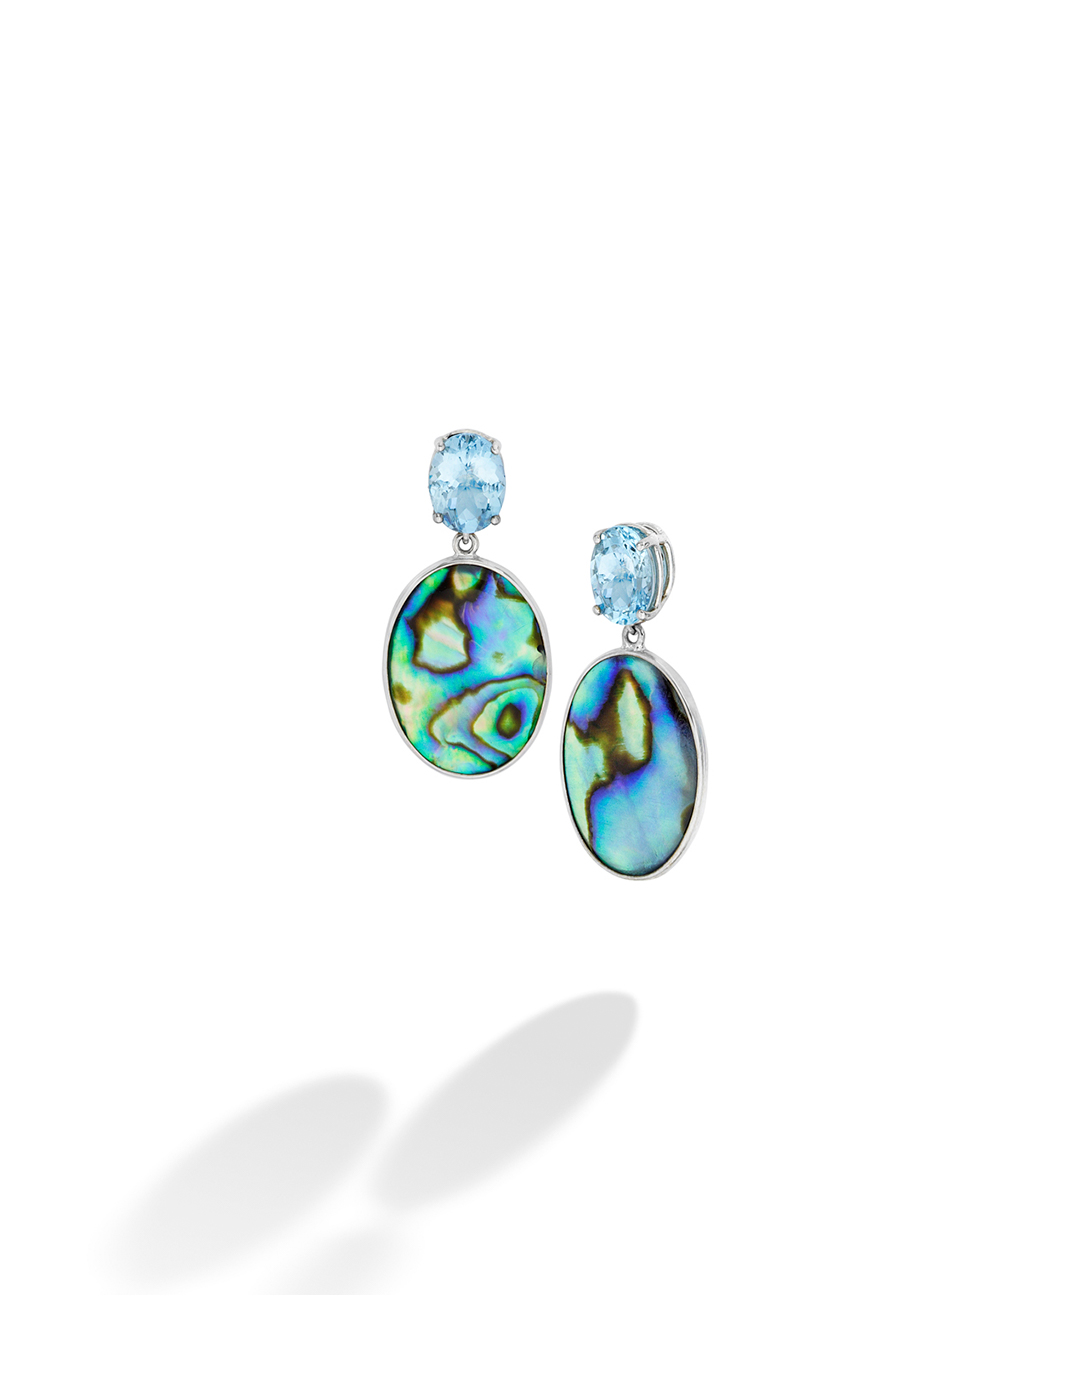 mish_products_earrings_Montreux-Abalone-ER-1_resize